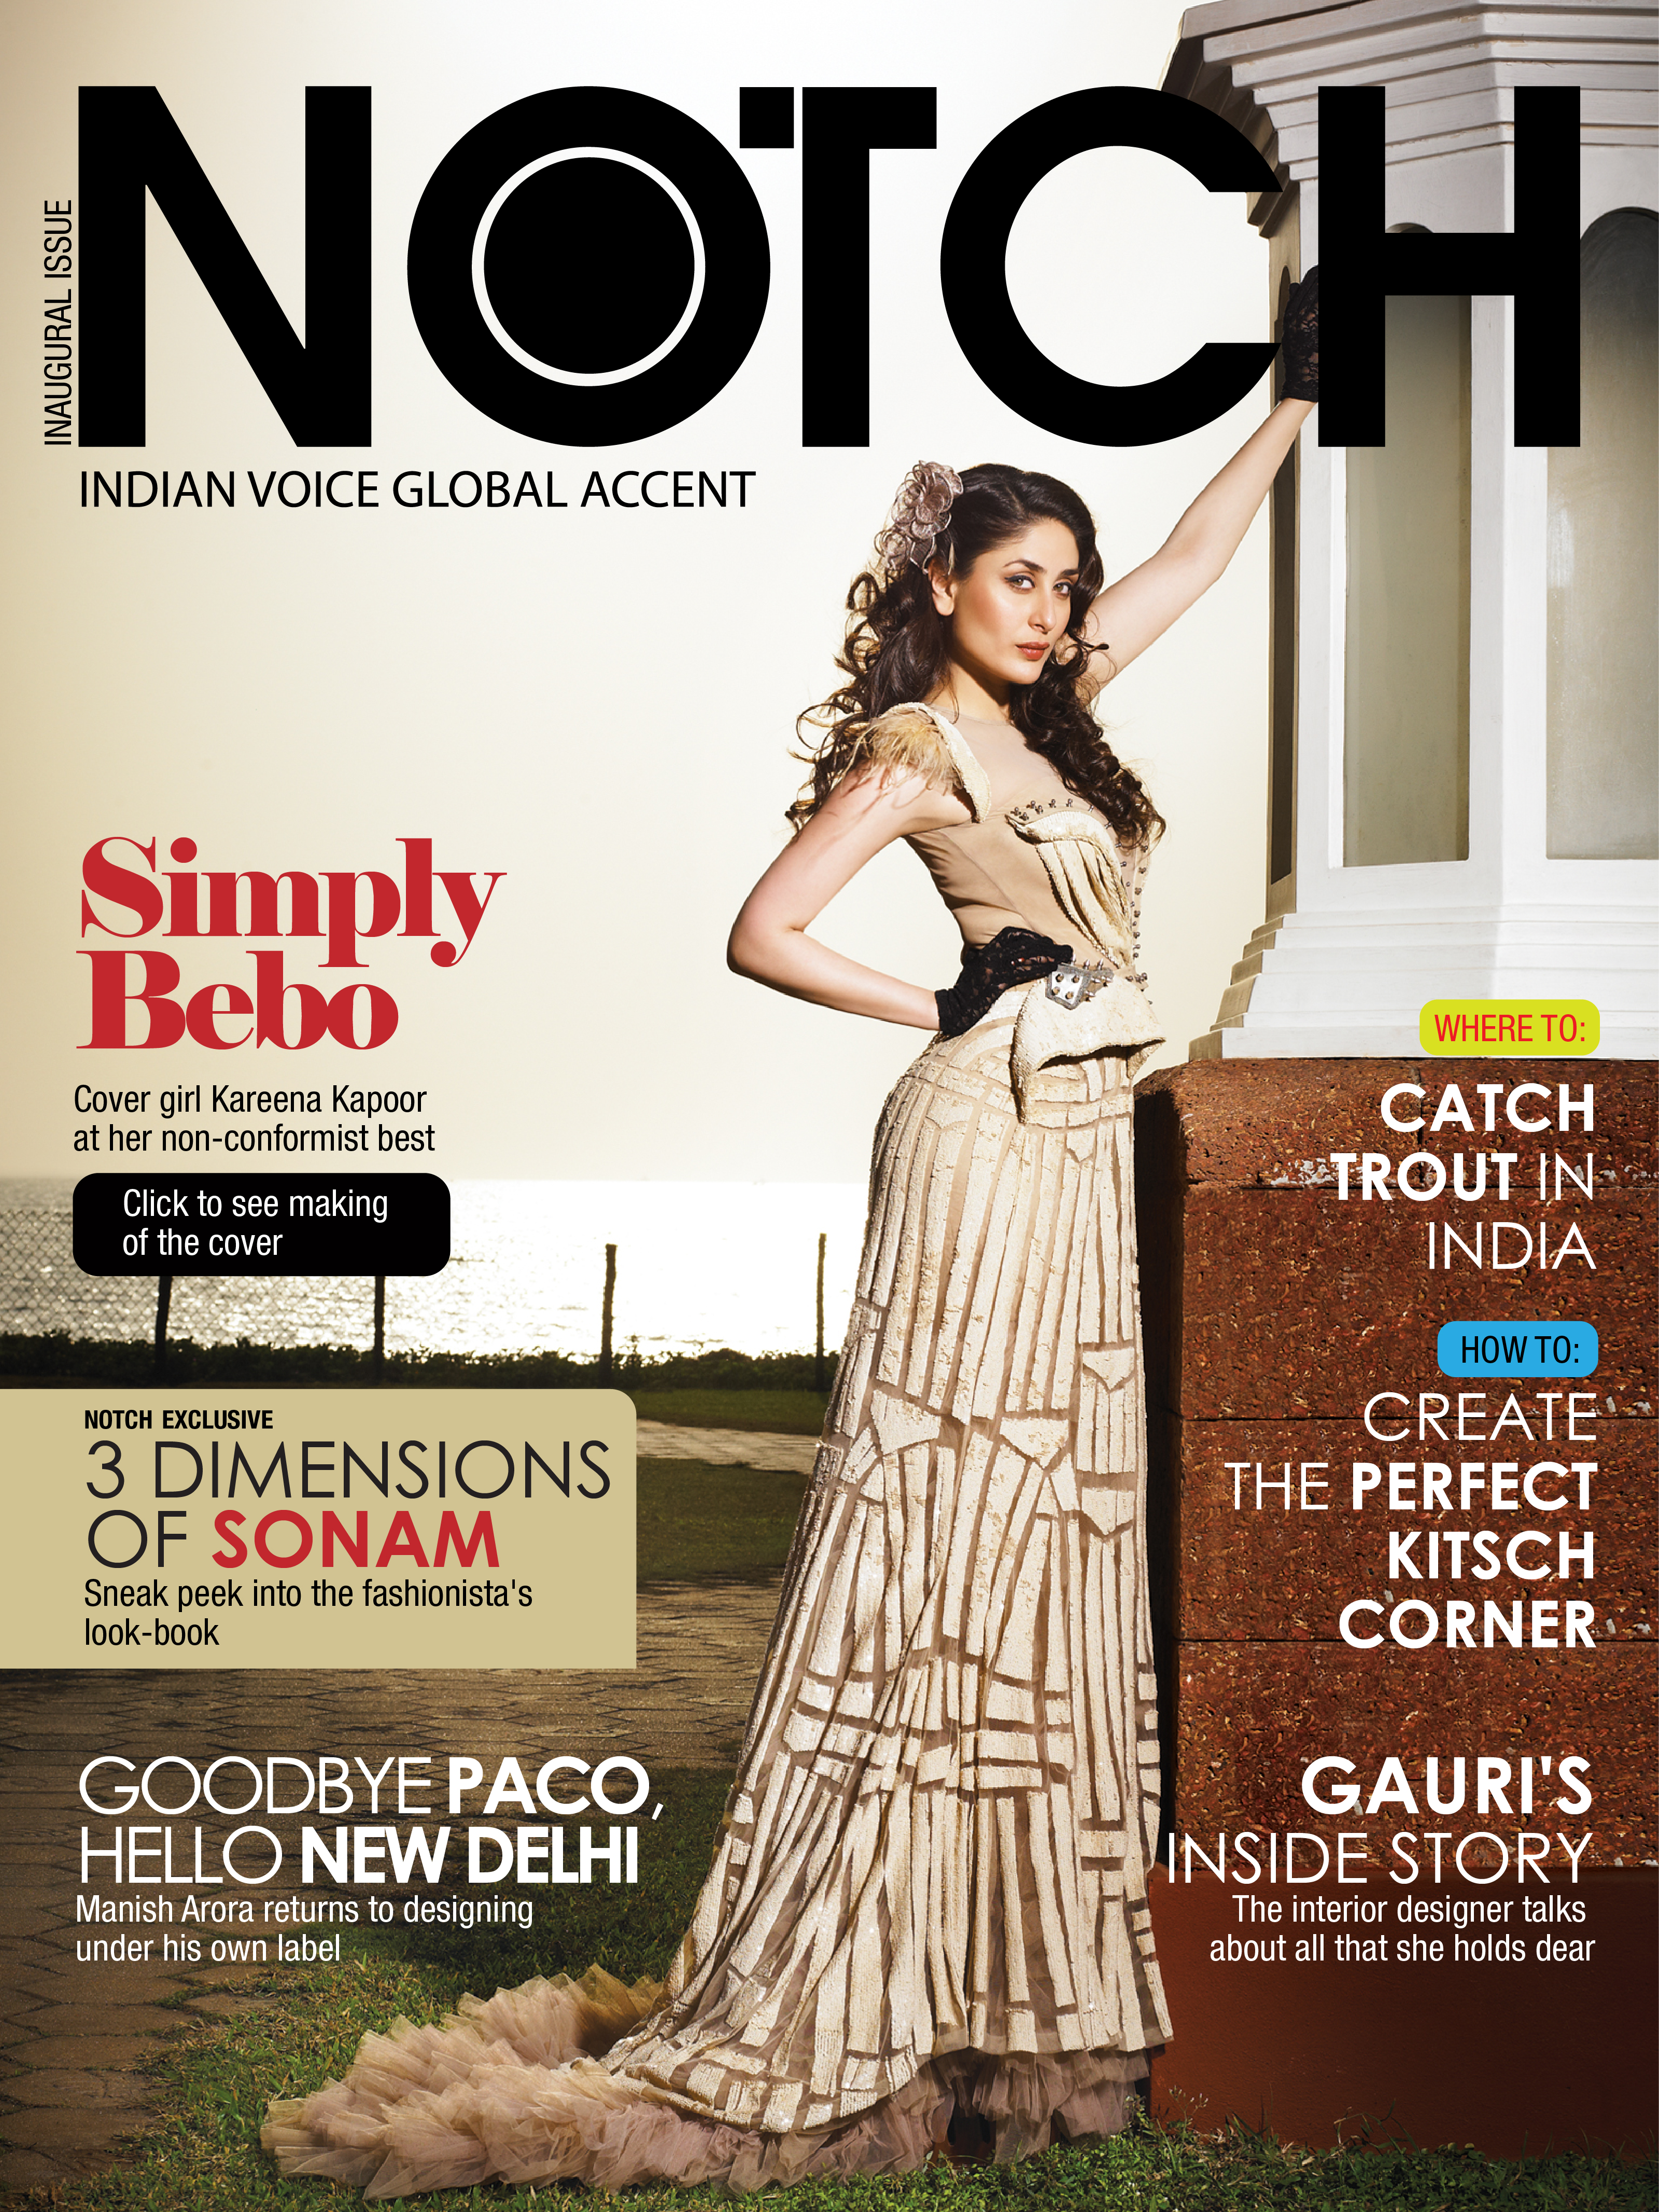 file notch magazine  november 2012 issue cover with